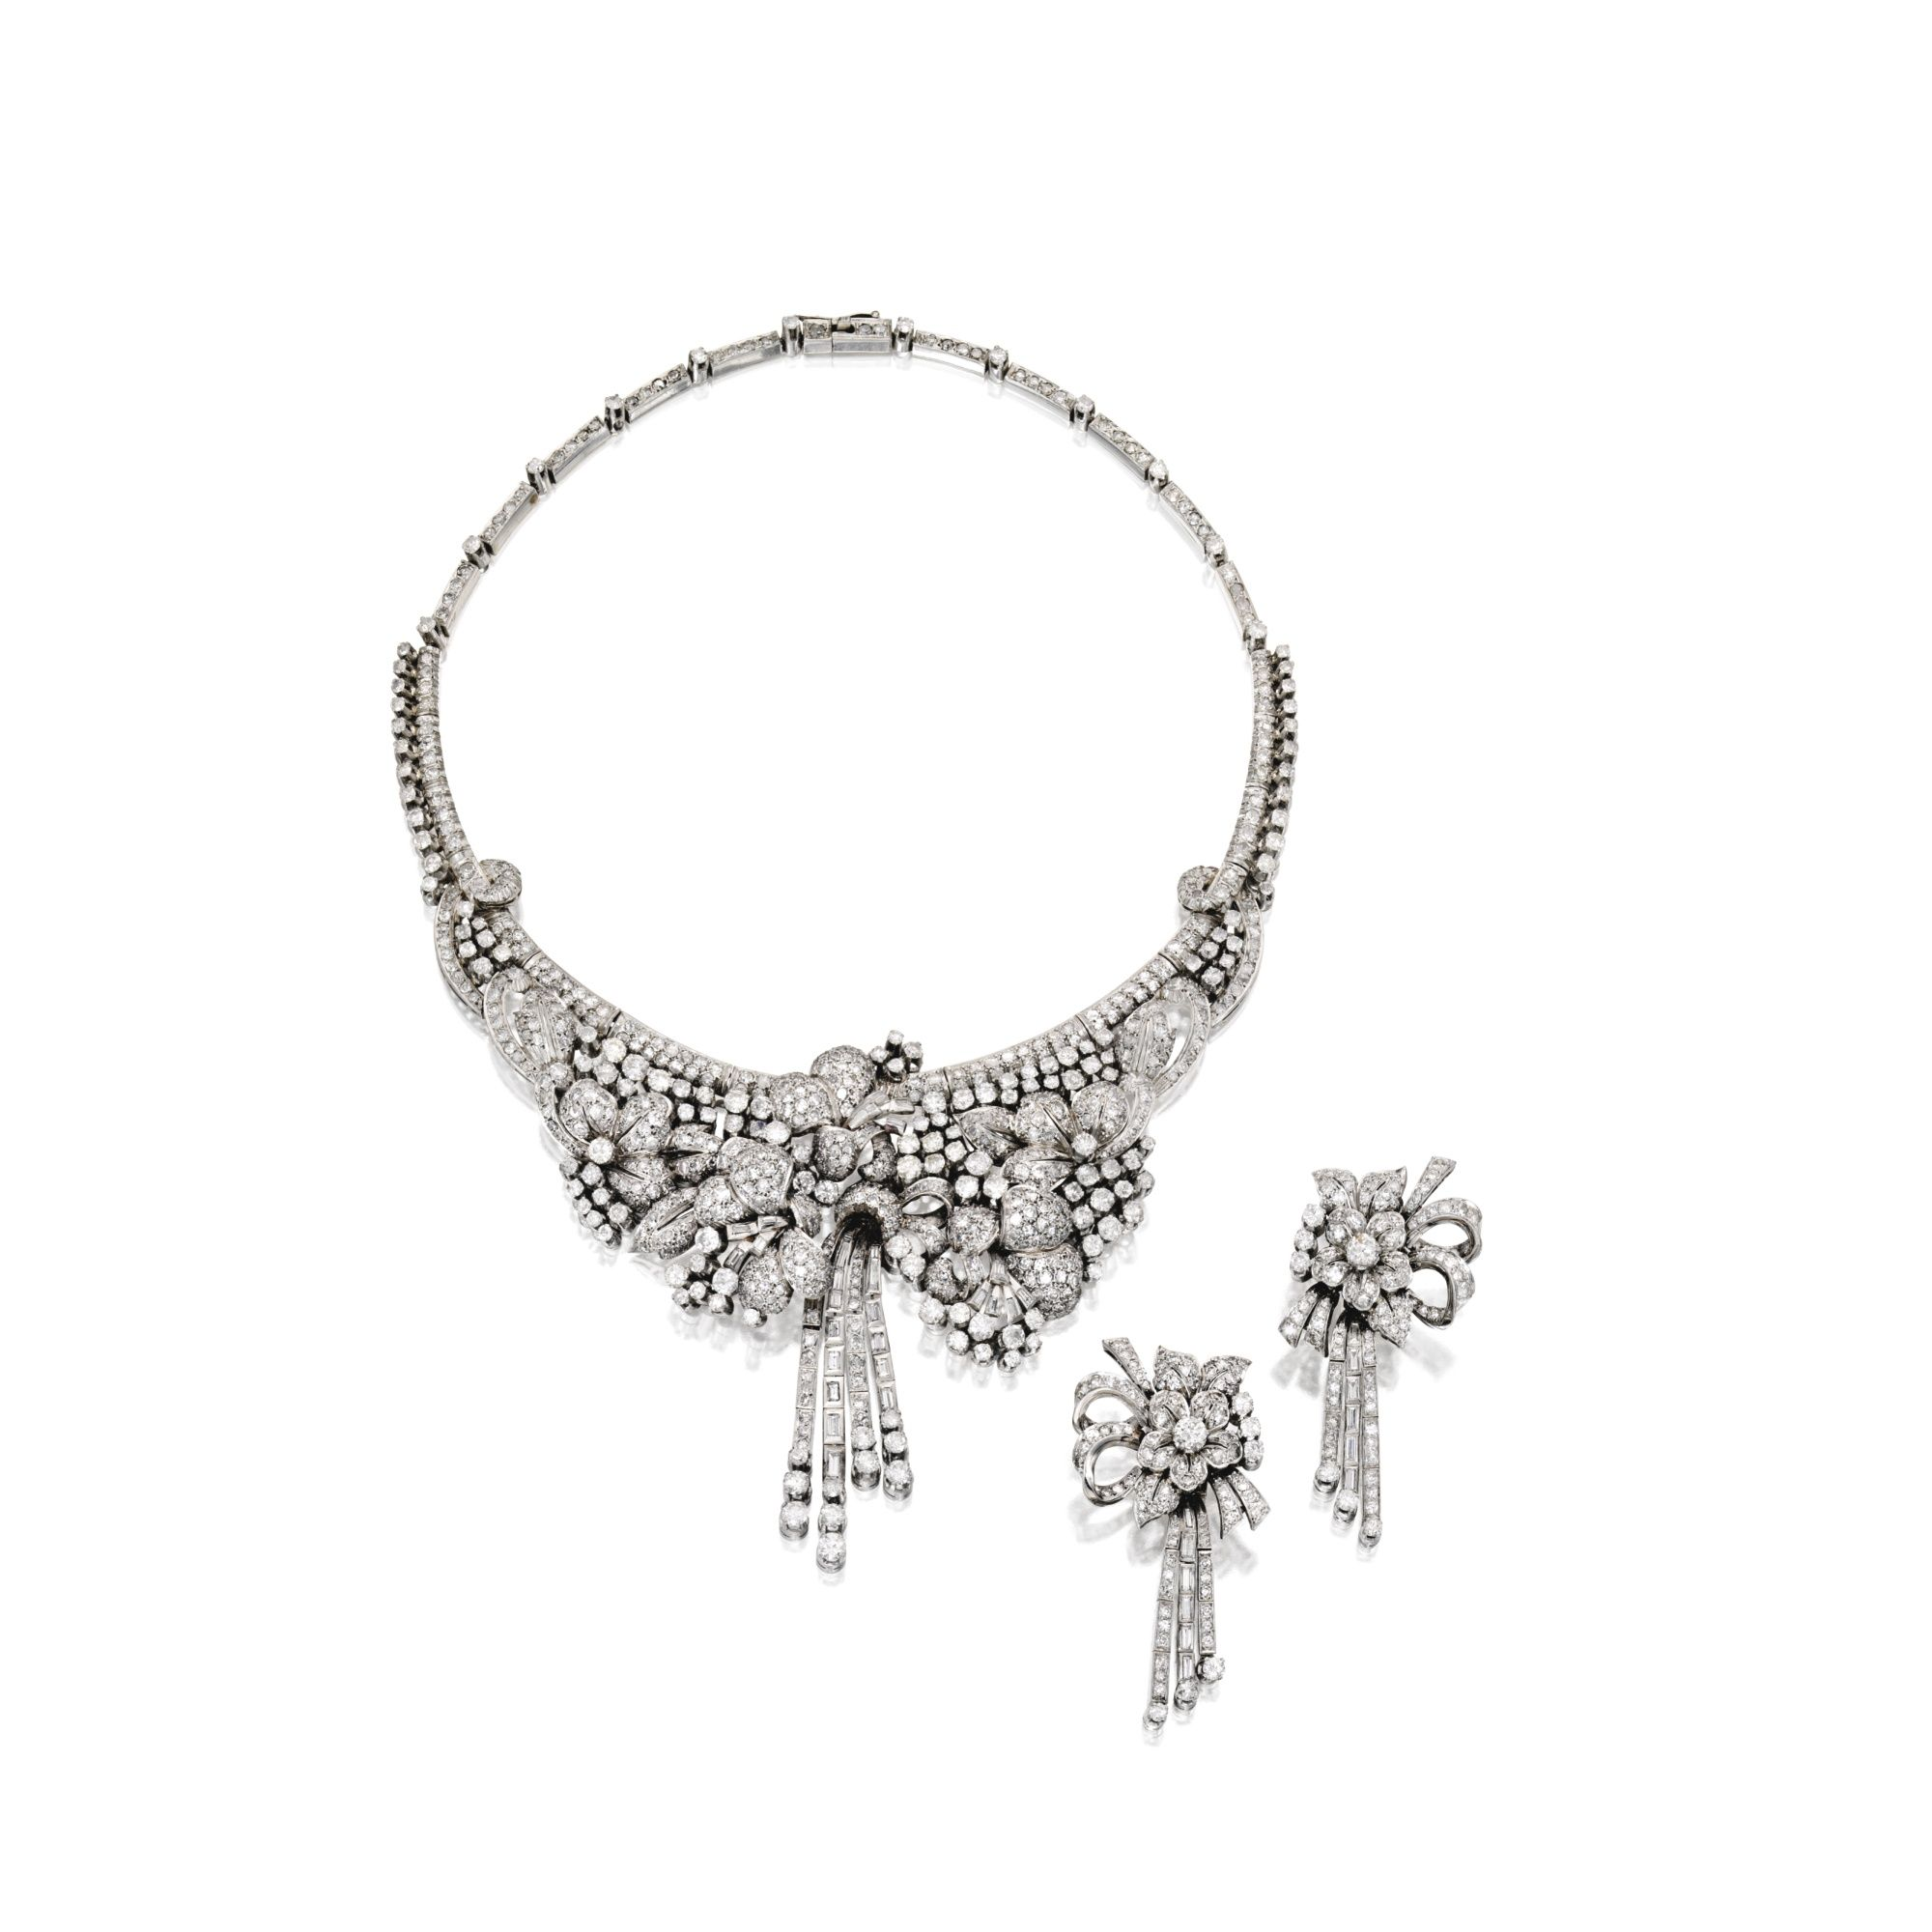 Mamie Eisenhower s Diamond and Platinum Necklace and Earclips 30